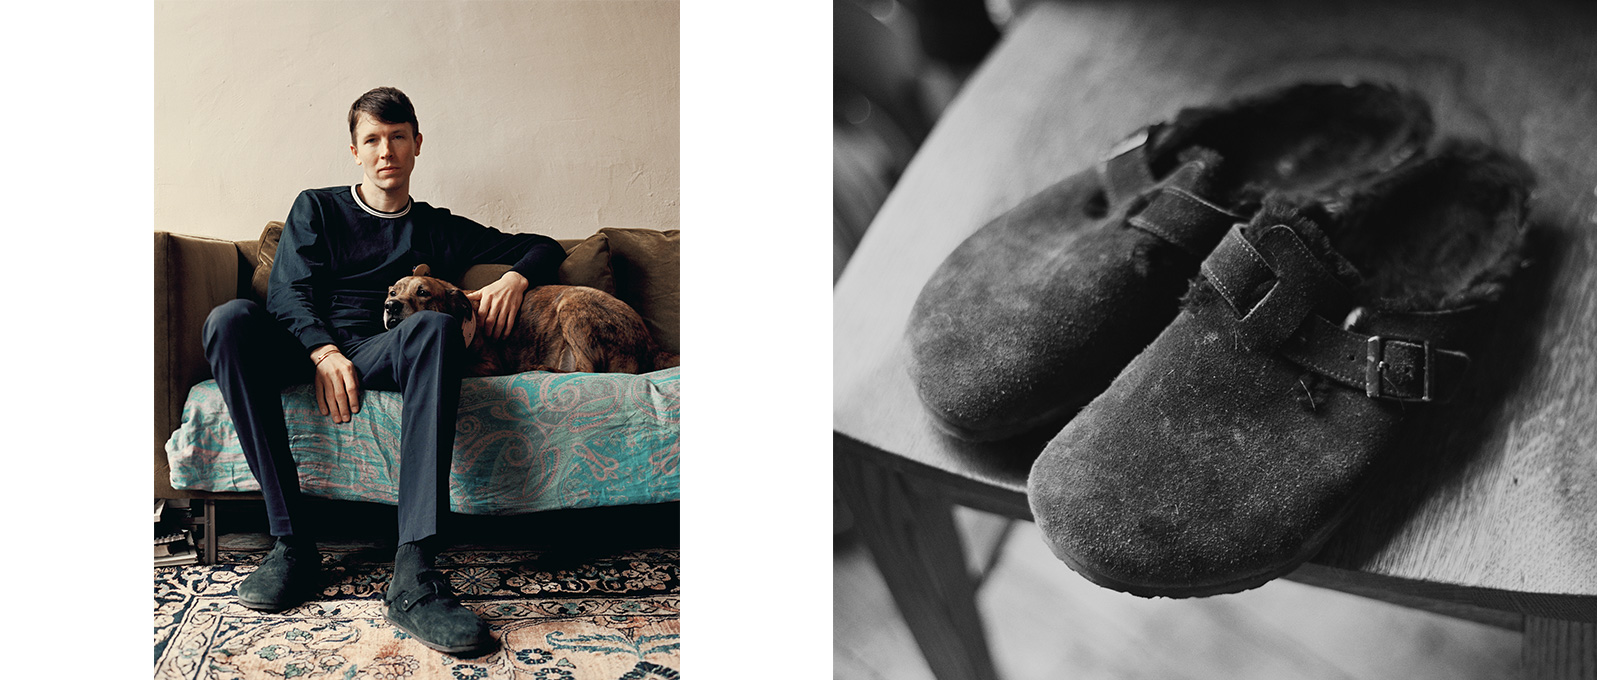 Ryan McGinley in Birkenstocks